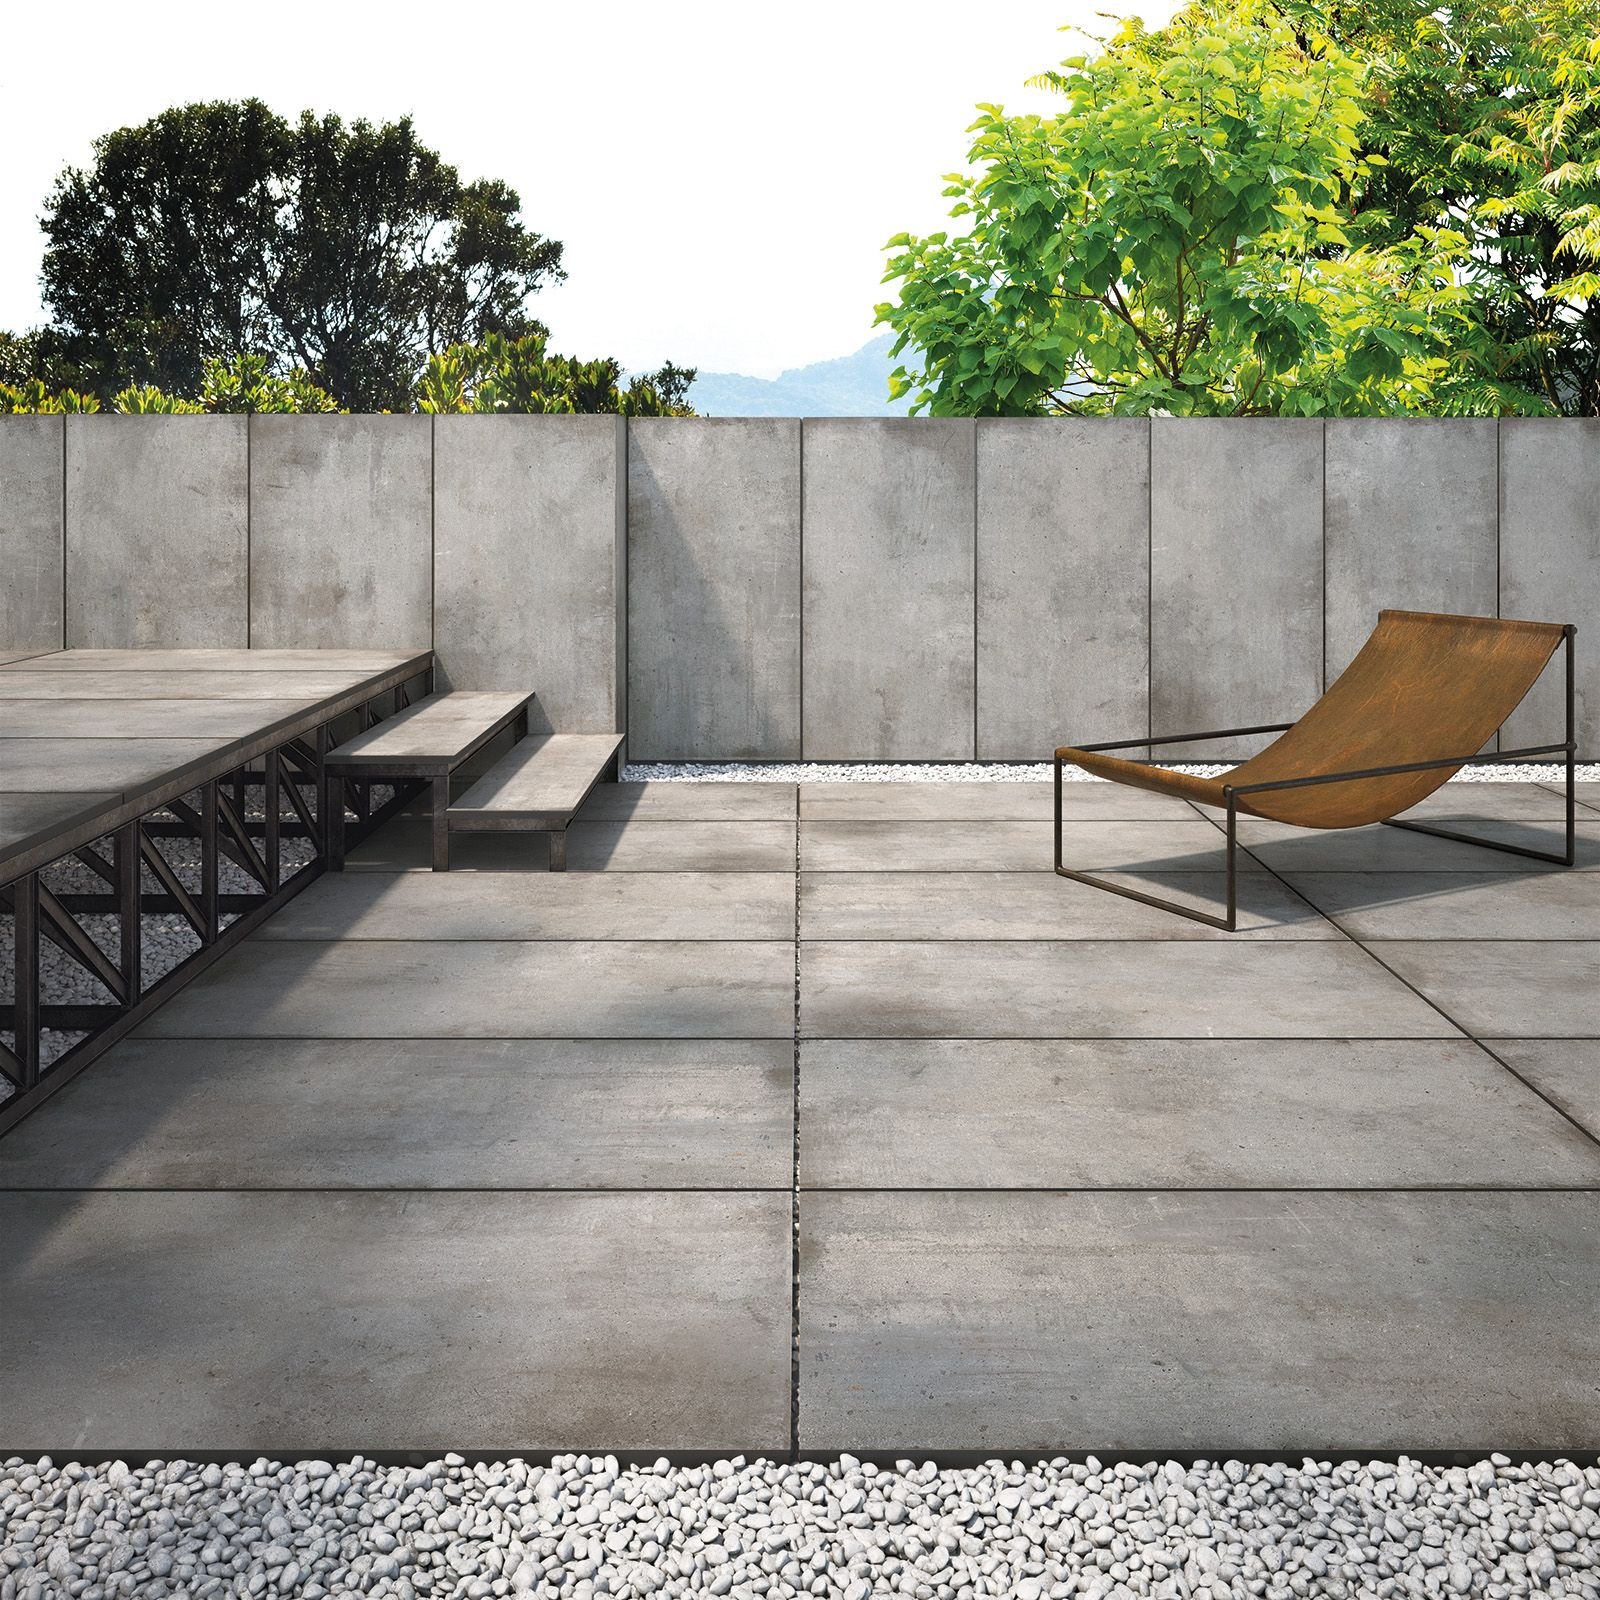 Industrial Inspired Garden Terrace, Featuring Large Format Patio Slabs.  Concrete Effect With Modern Garden